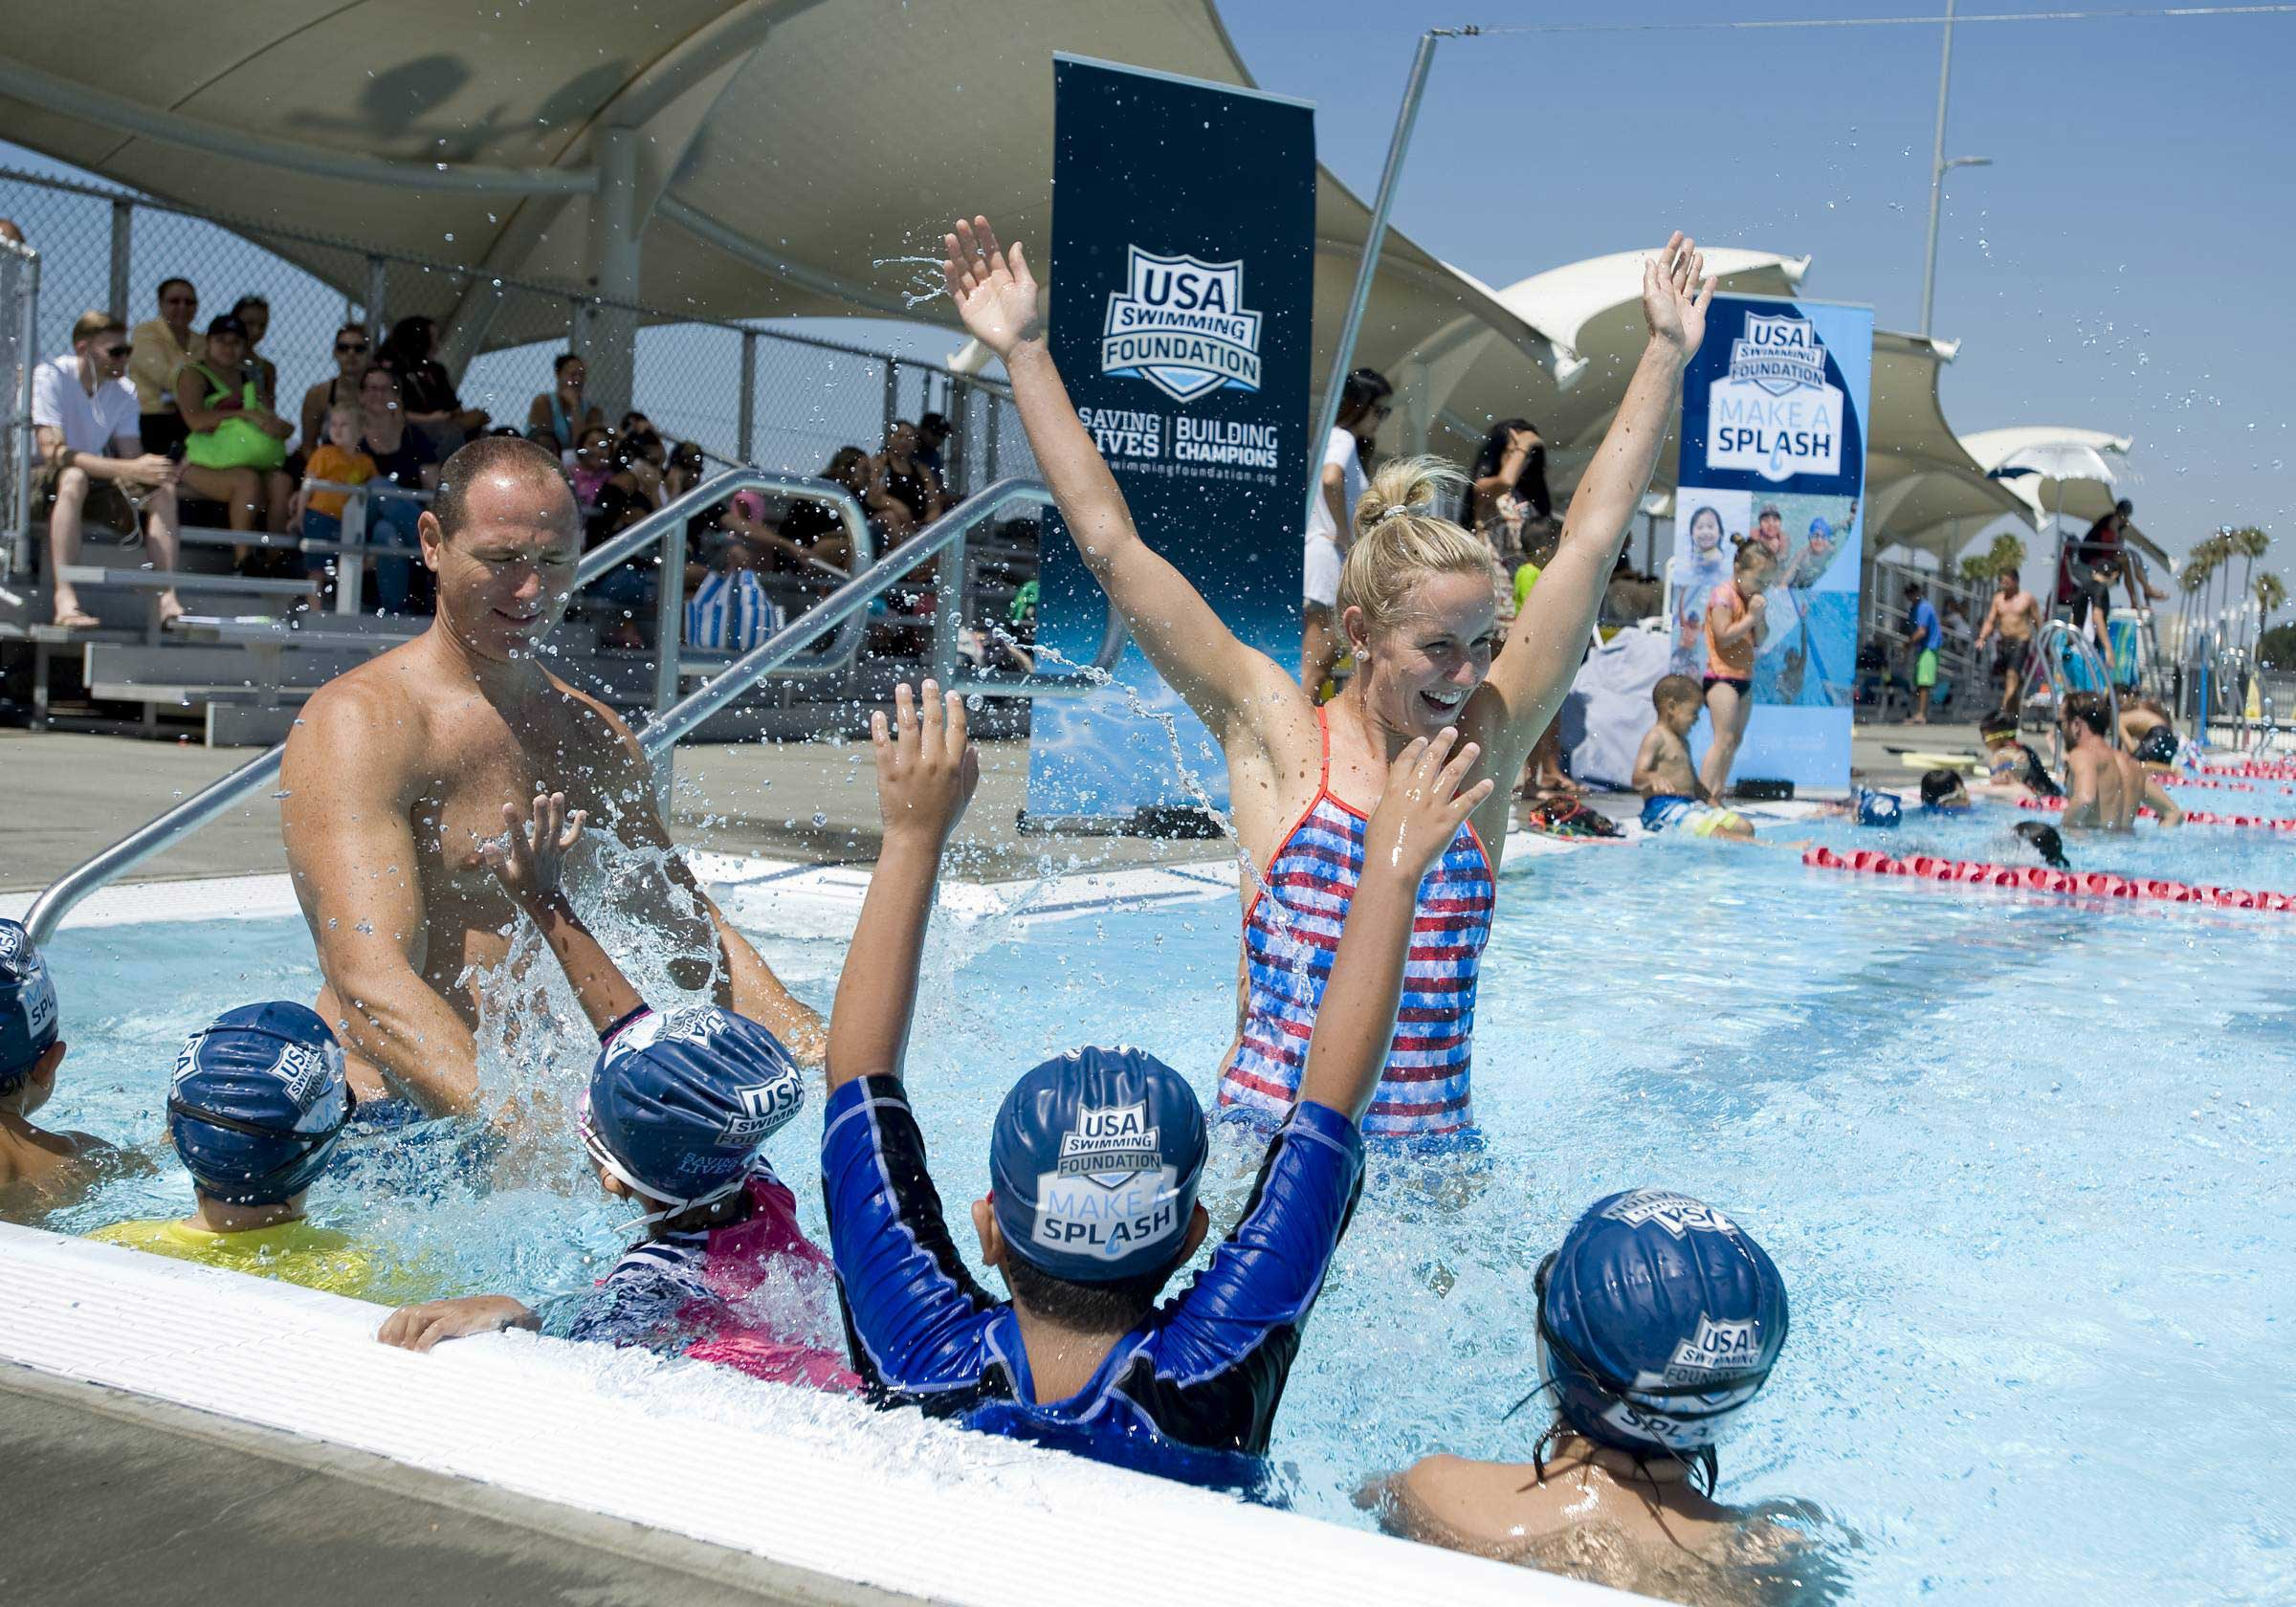 August 2, 2016, Long Beach, CA. Olympic Ambassadors Jessica Hardy and Jason Lezak kick off USA Swimming Foundation's first-ever Make a Splash Games.